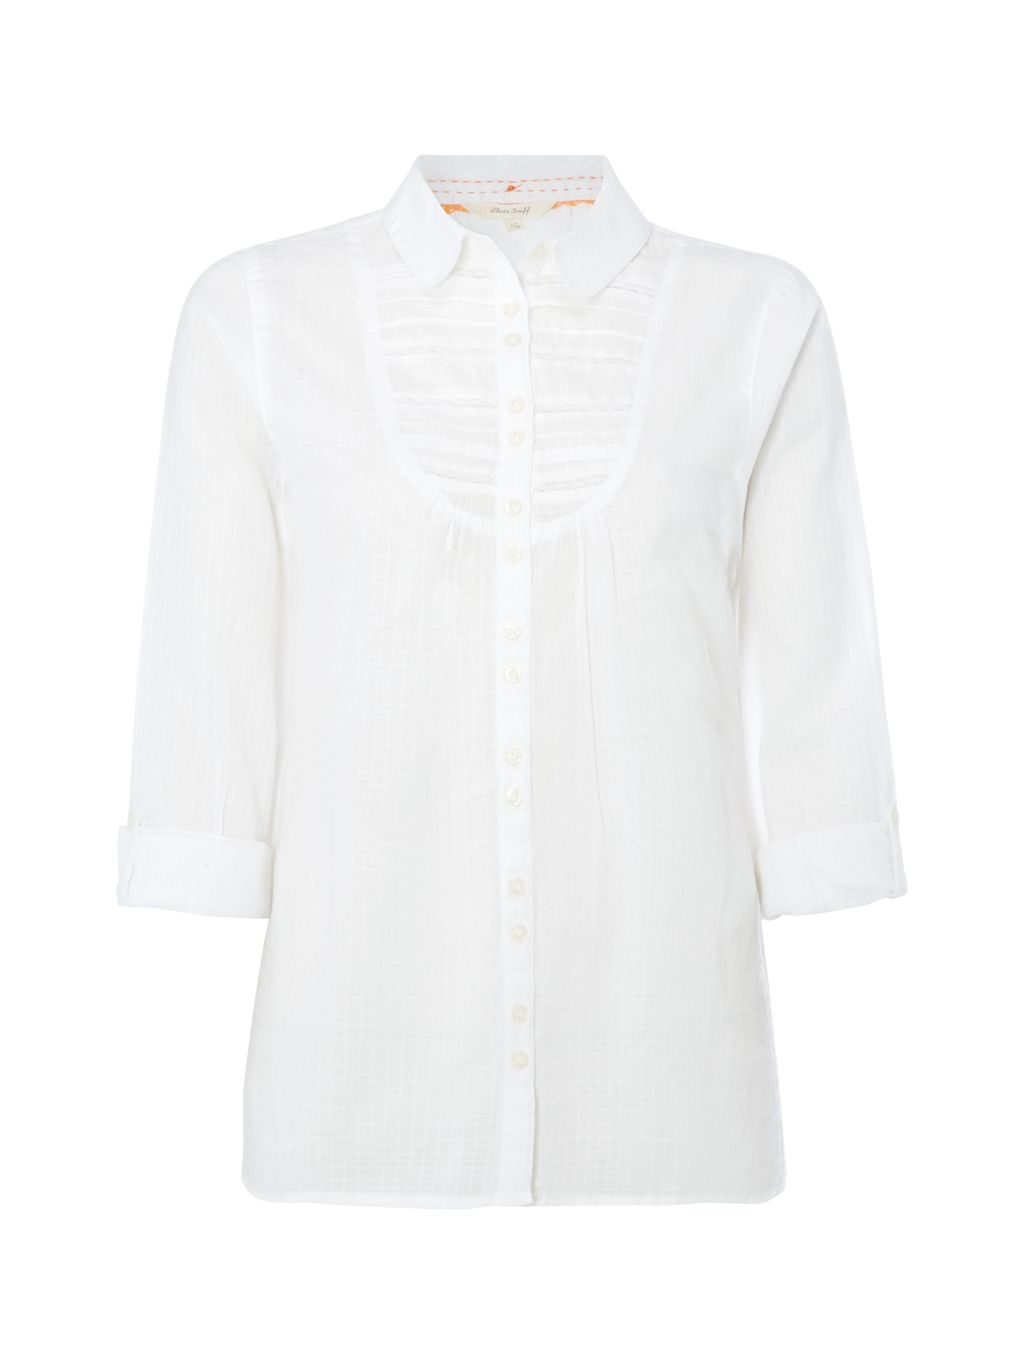 Past Time Shirt, White - neckline: shirt collar/peter pan/zip with opening; pattern: plain; style: shirt; predominant colour: white; occasions: casual, work, creative work; length: standard; fibres: cotton - 100%; fit: body skimming; sleeve length: 3/4 length; sleeve style: standard; texture group: cotton feel fabrics; pattern type: fabric; season: s/s 2016; wardrobe: basic